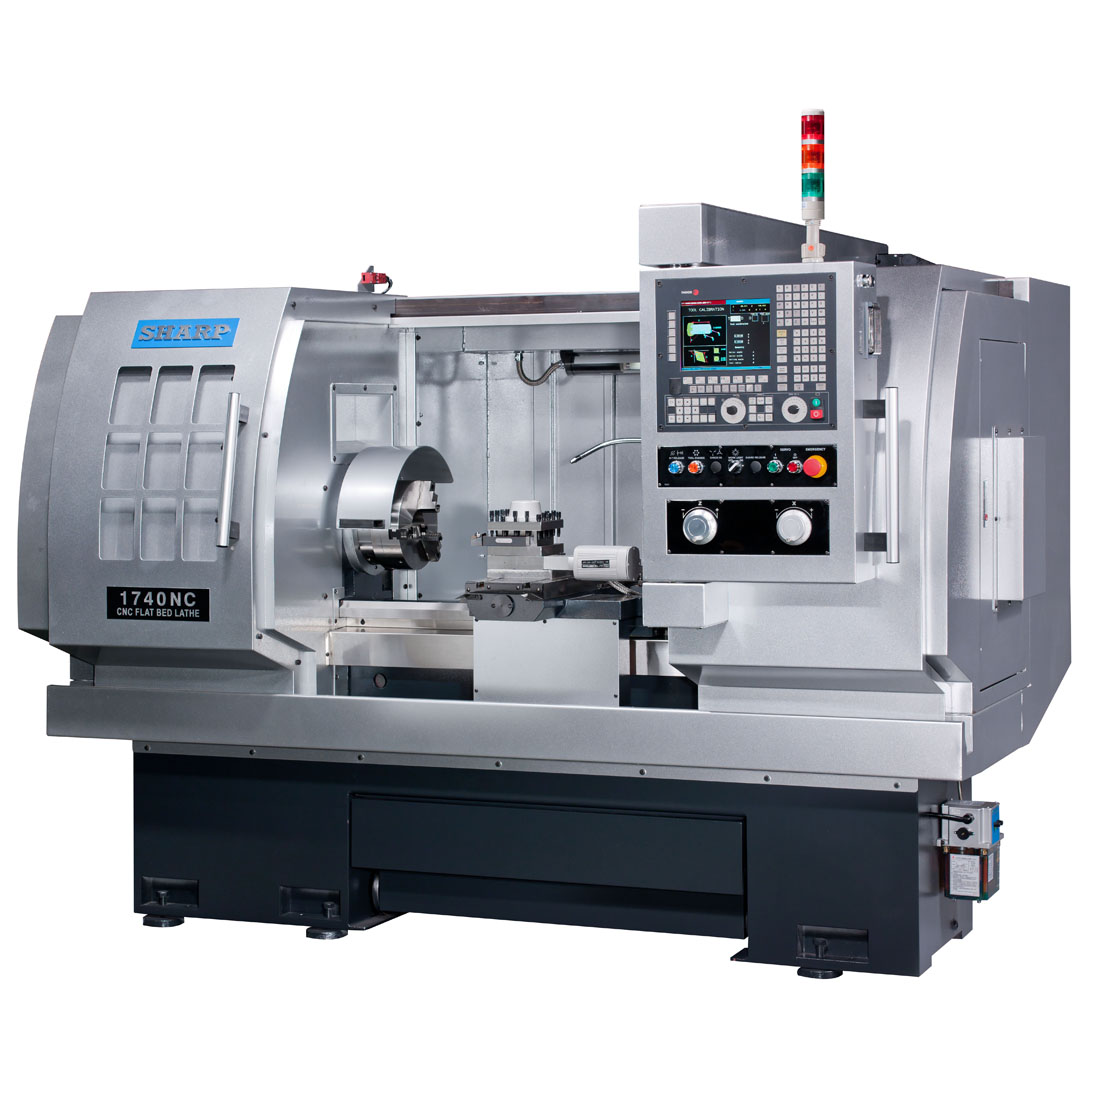 NEW SHARP 1740NC PRECISION CNC LATHE